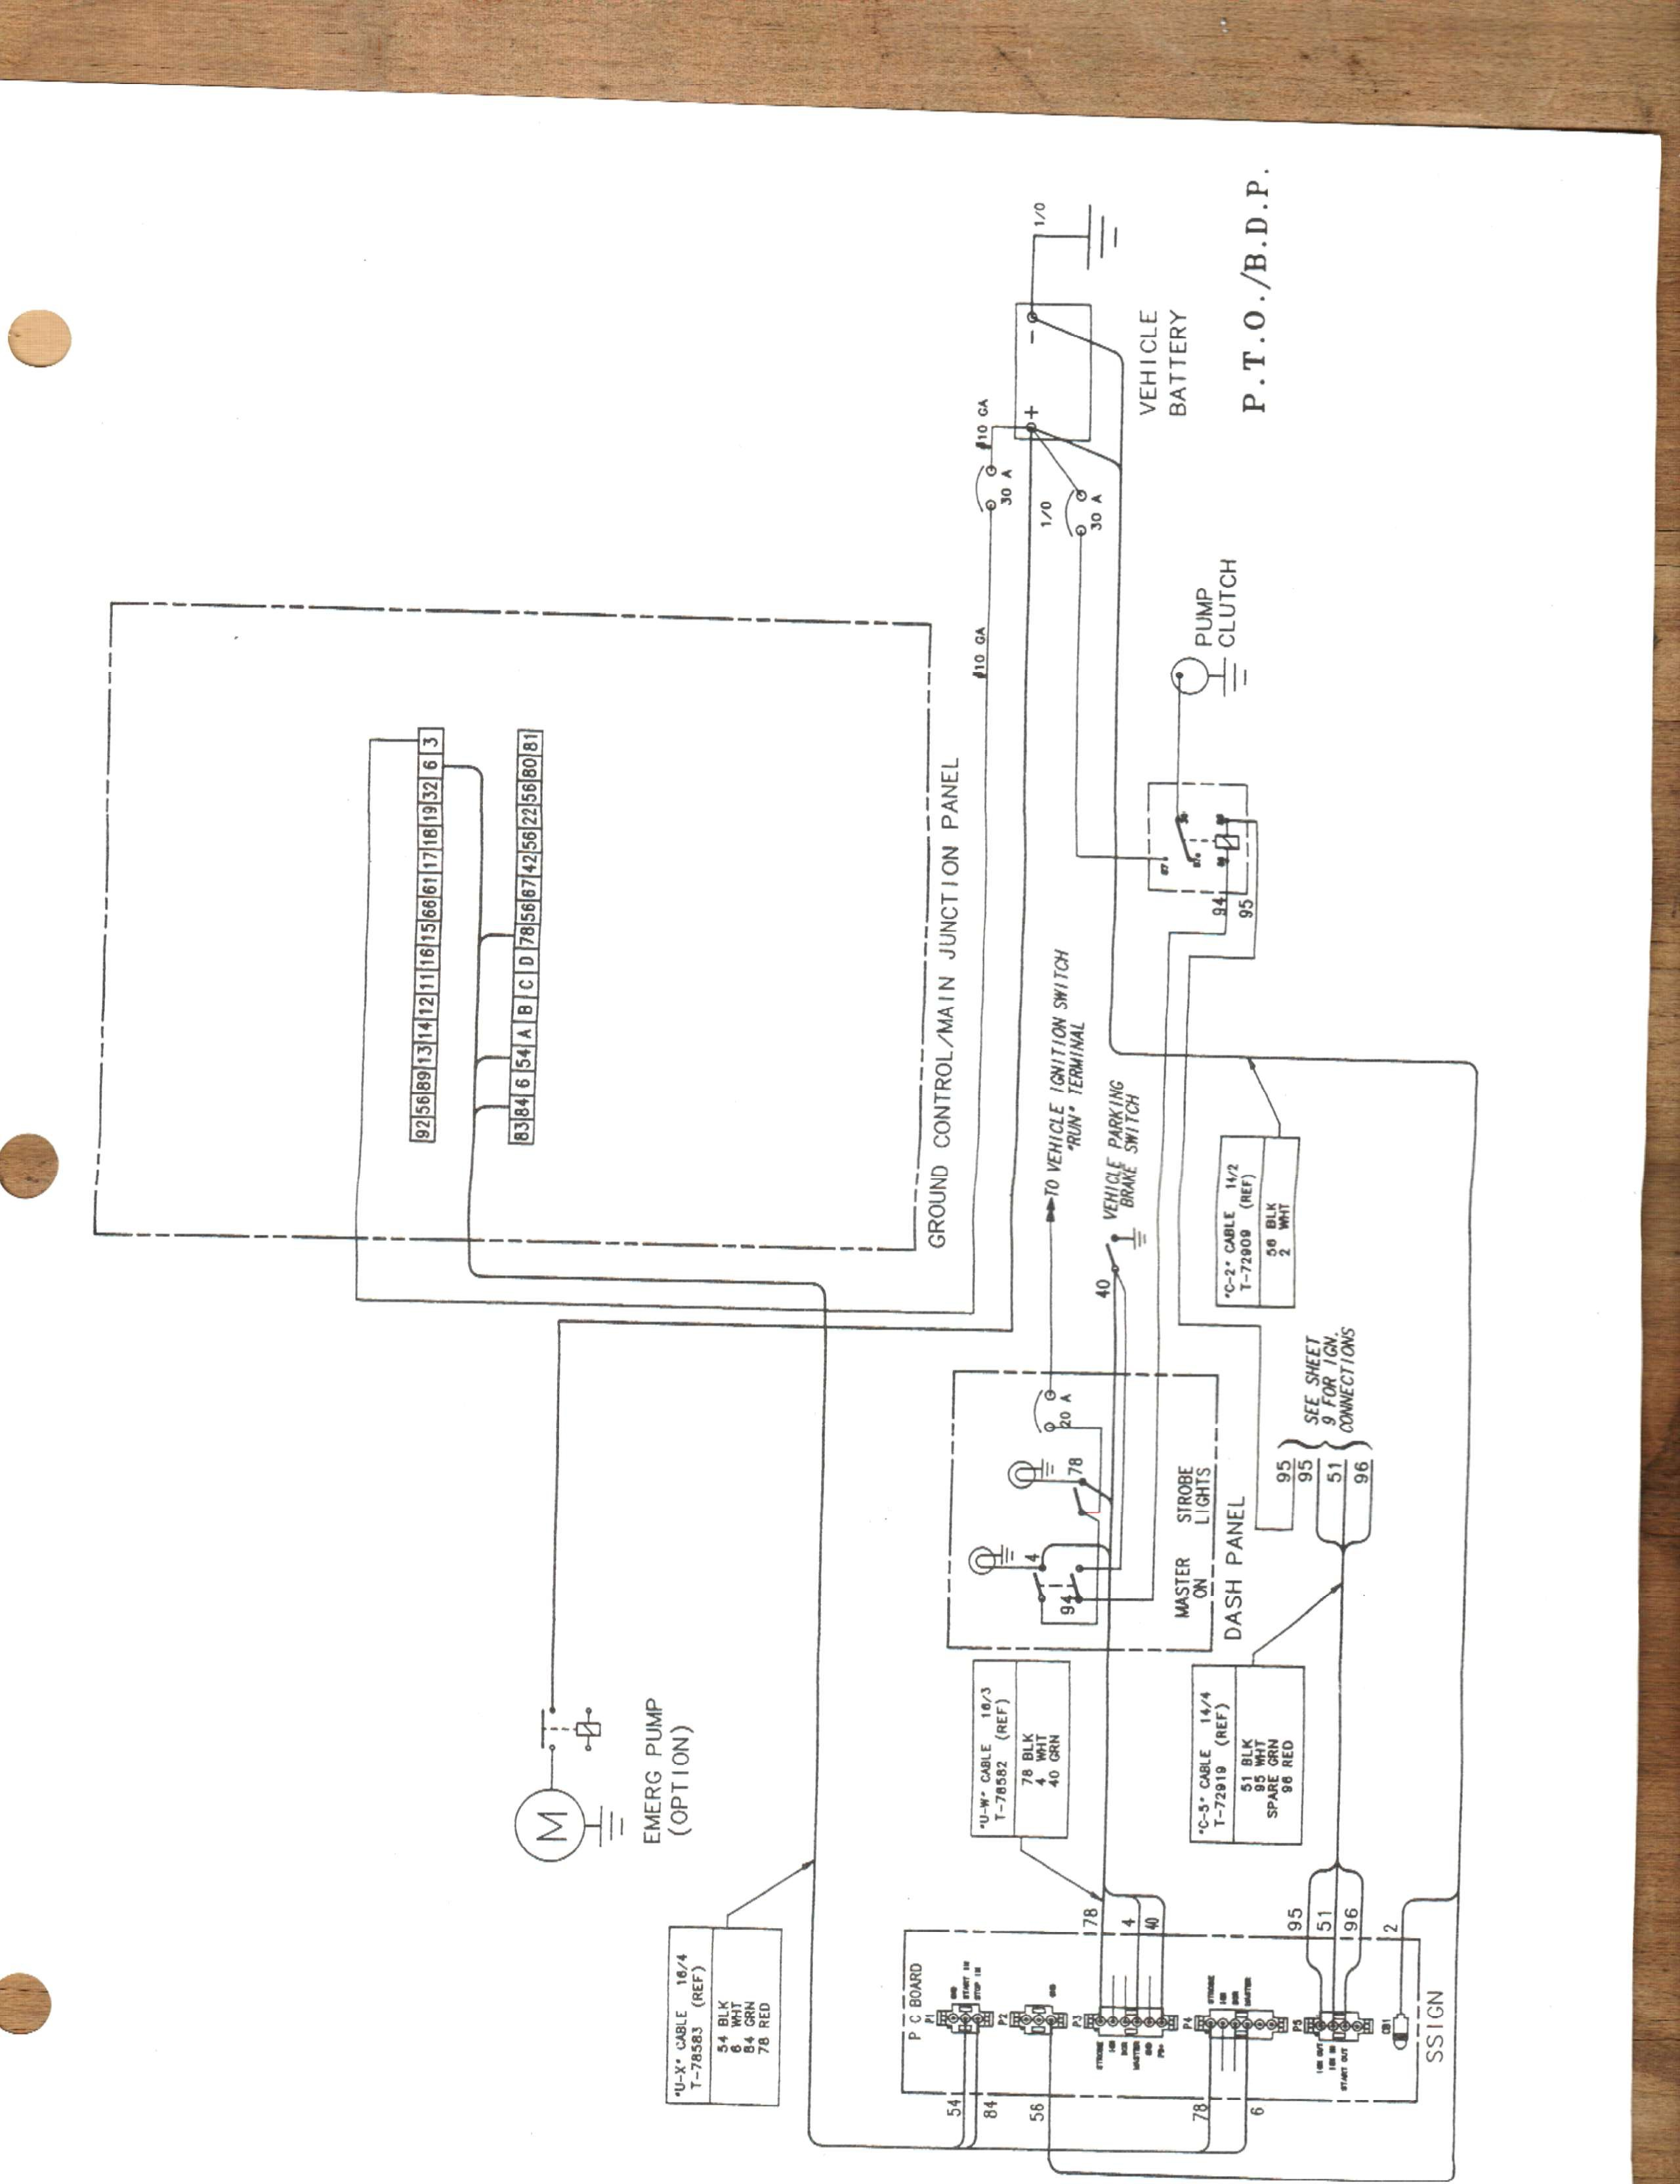 Altec Ta60 Wiring Diagram Library Trane Diagrams Model Twe Telsta Bucket Truck Product U2022 Controls